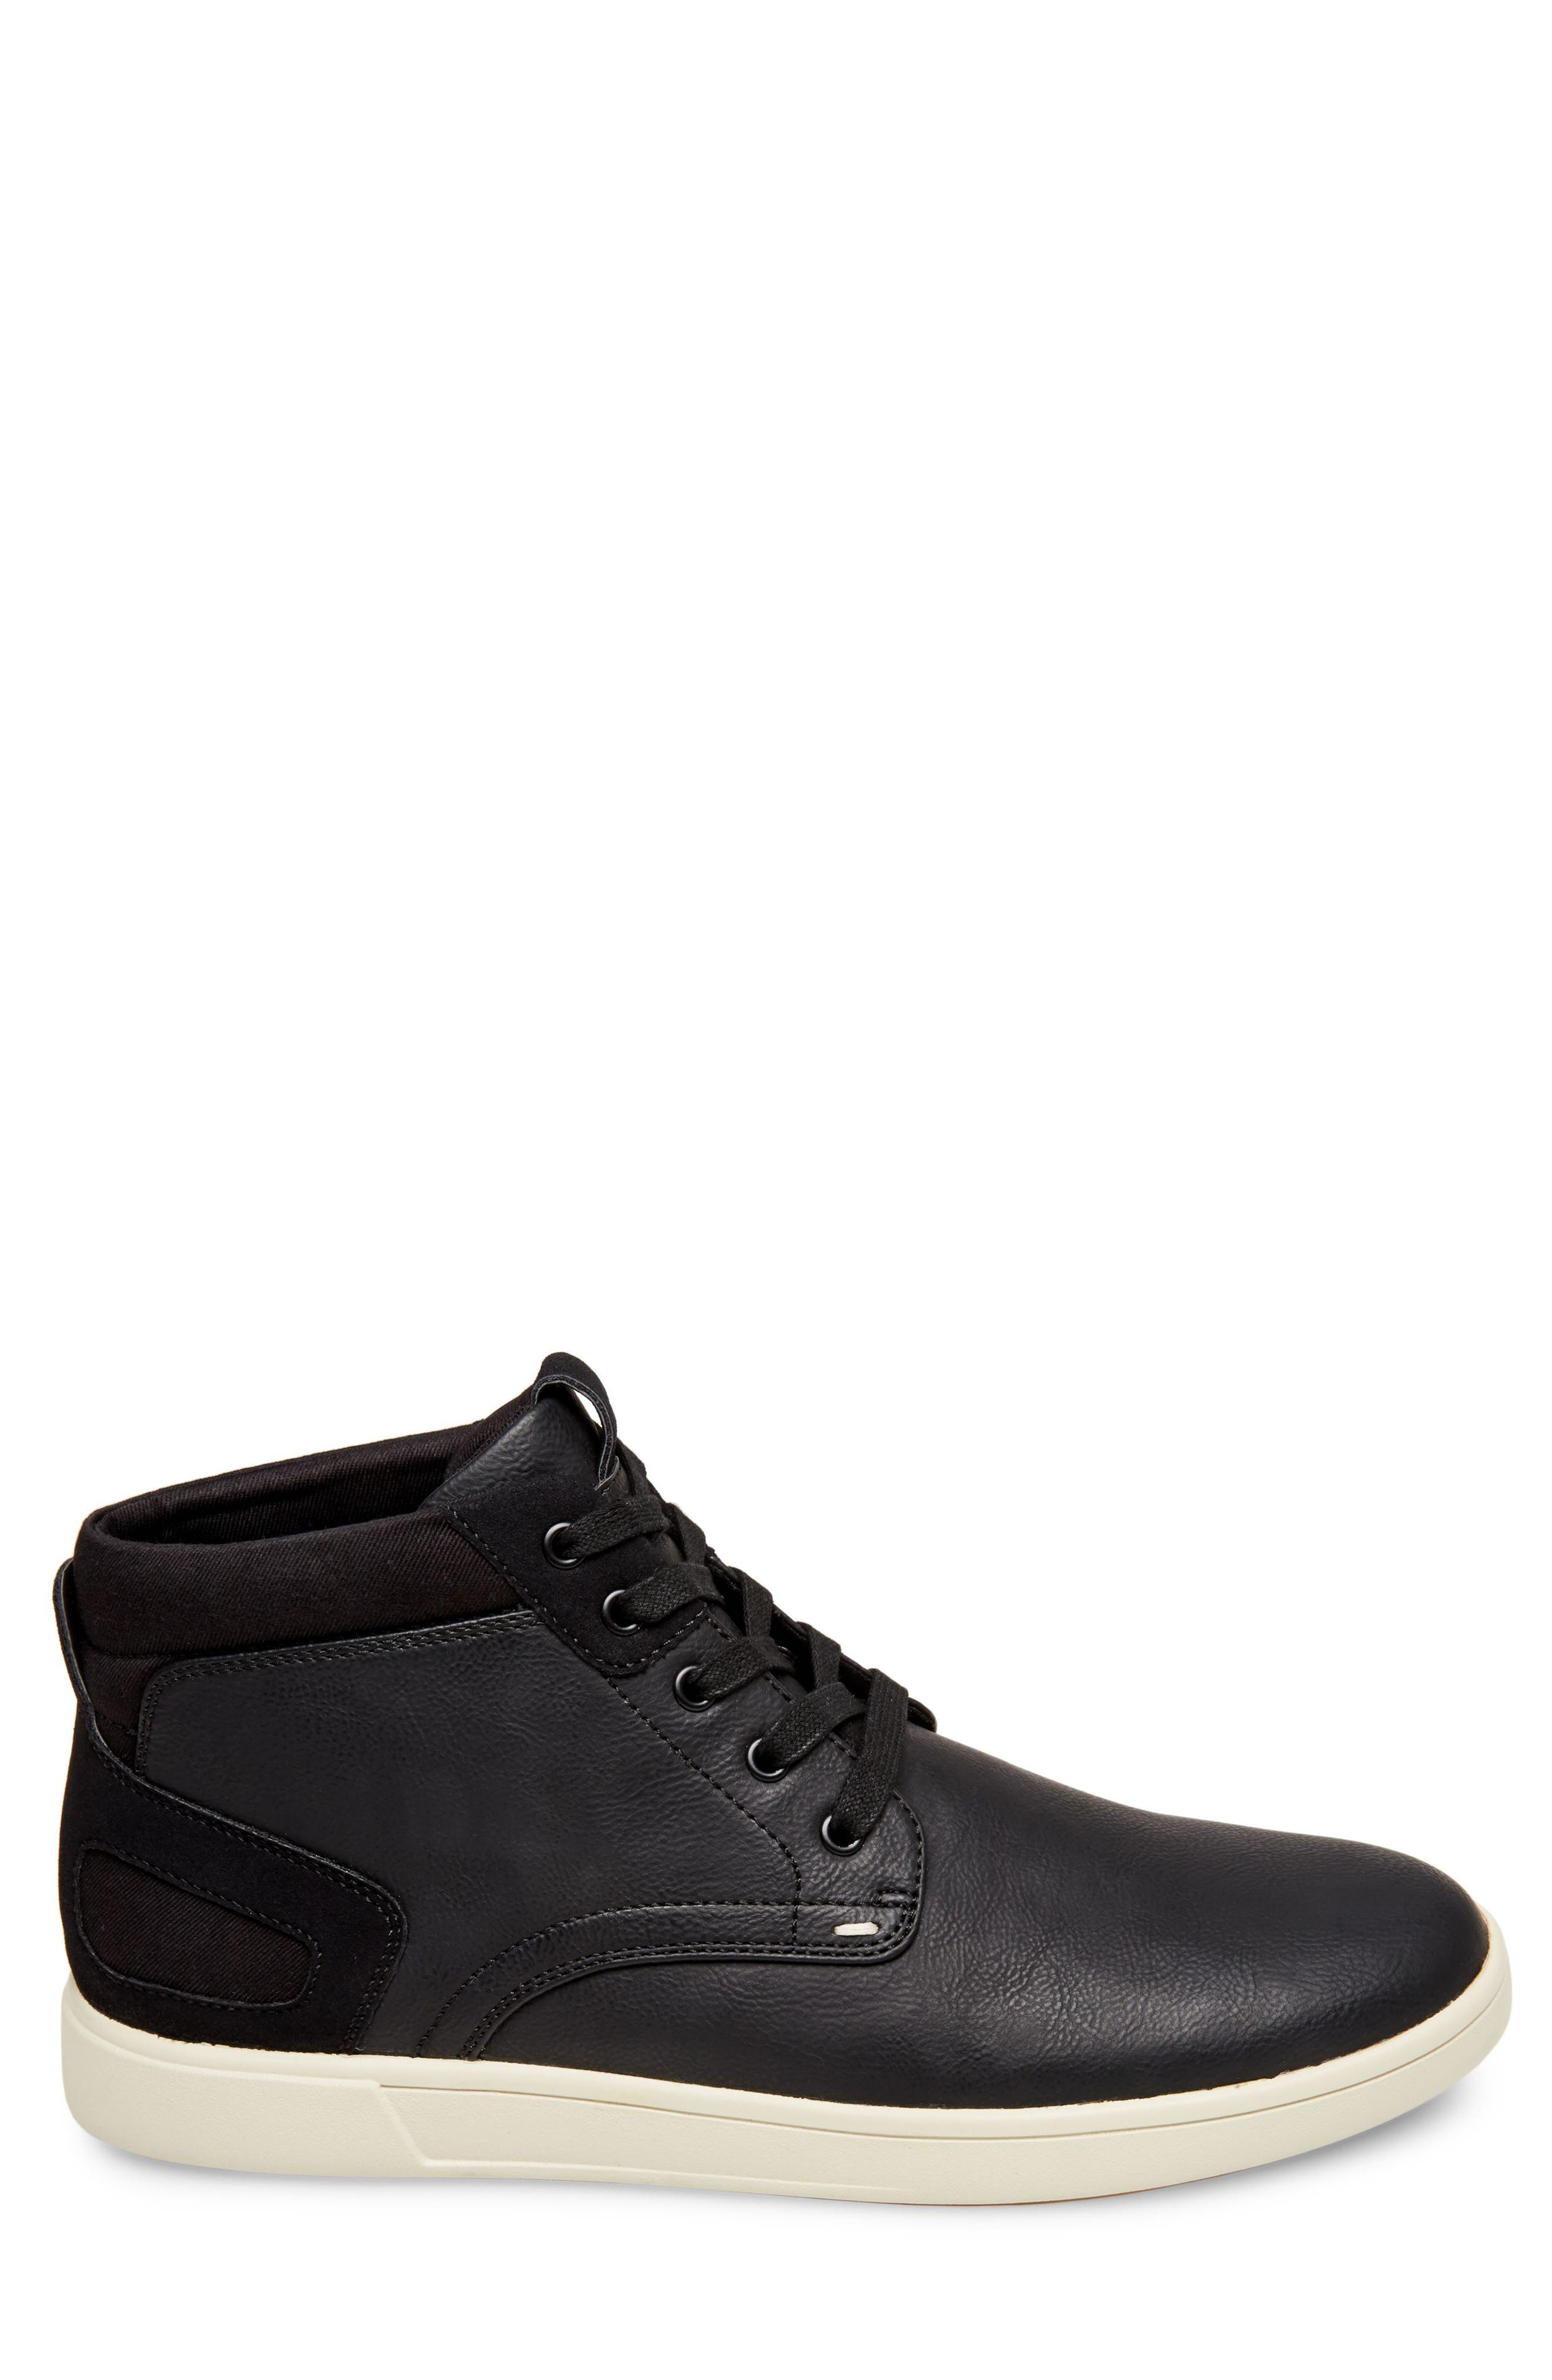 Forsyth High Top Sneaker,                             Alternate thumbnail 3, color,                             Black Leather